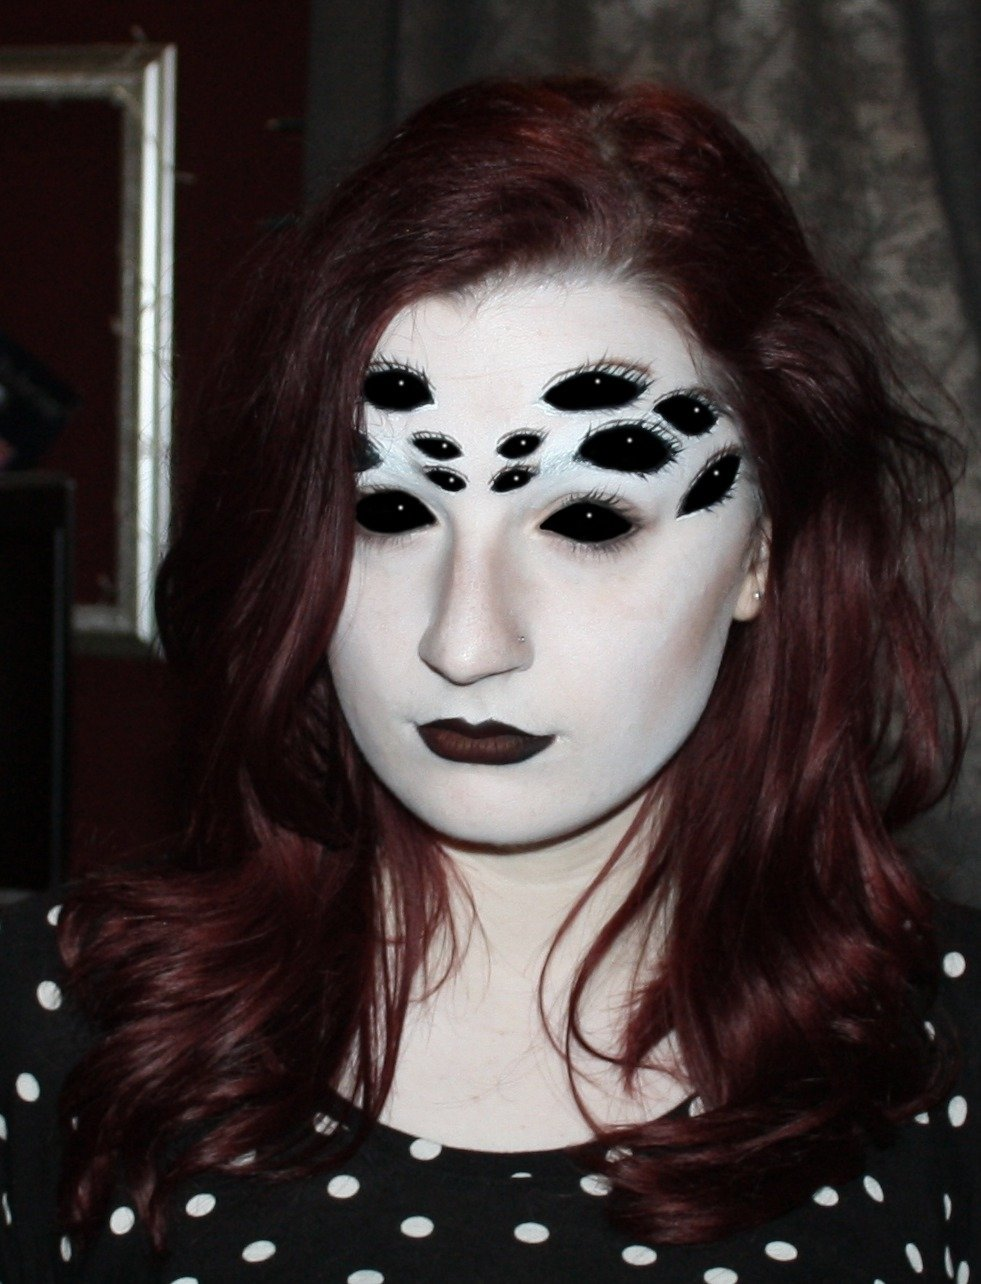 10 Best Face Painting For Halloween Ideas creepy spider eyes make up design perfect for halloween 5 2020